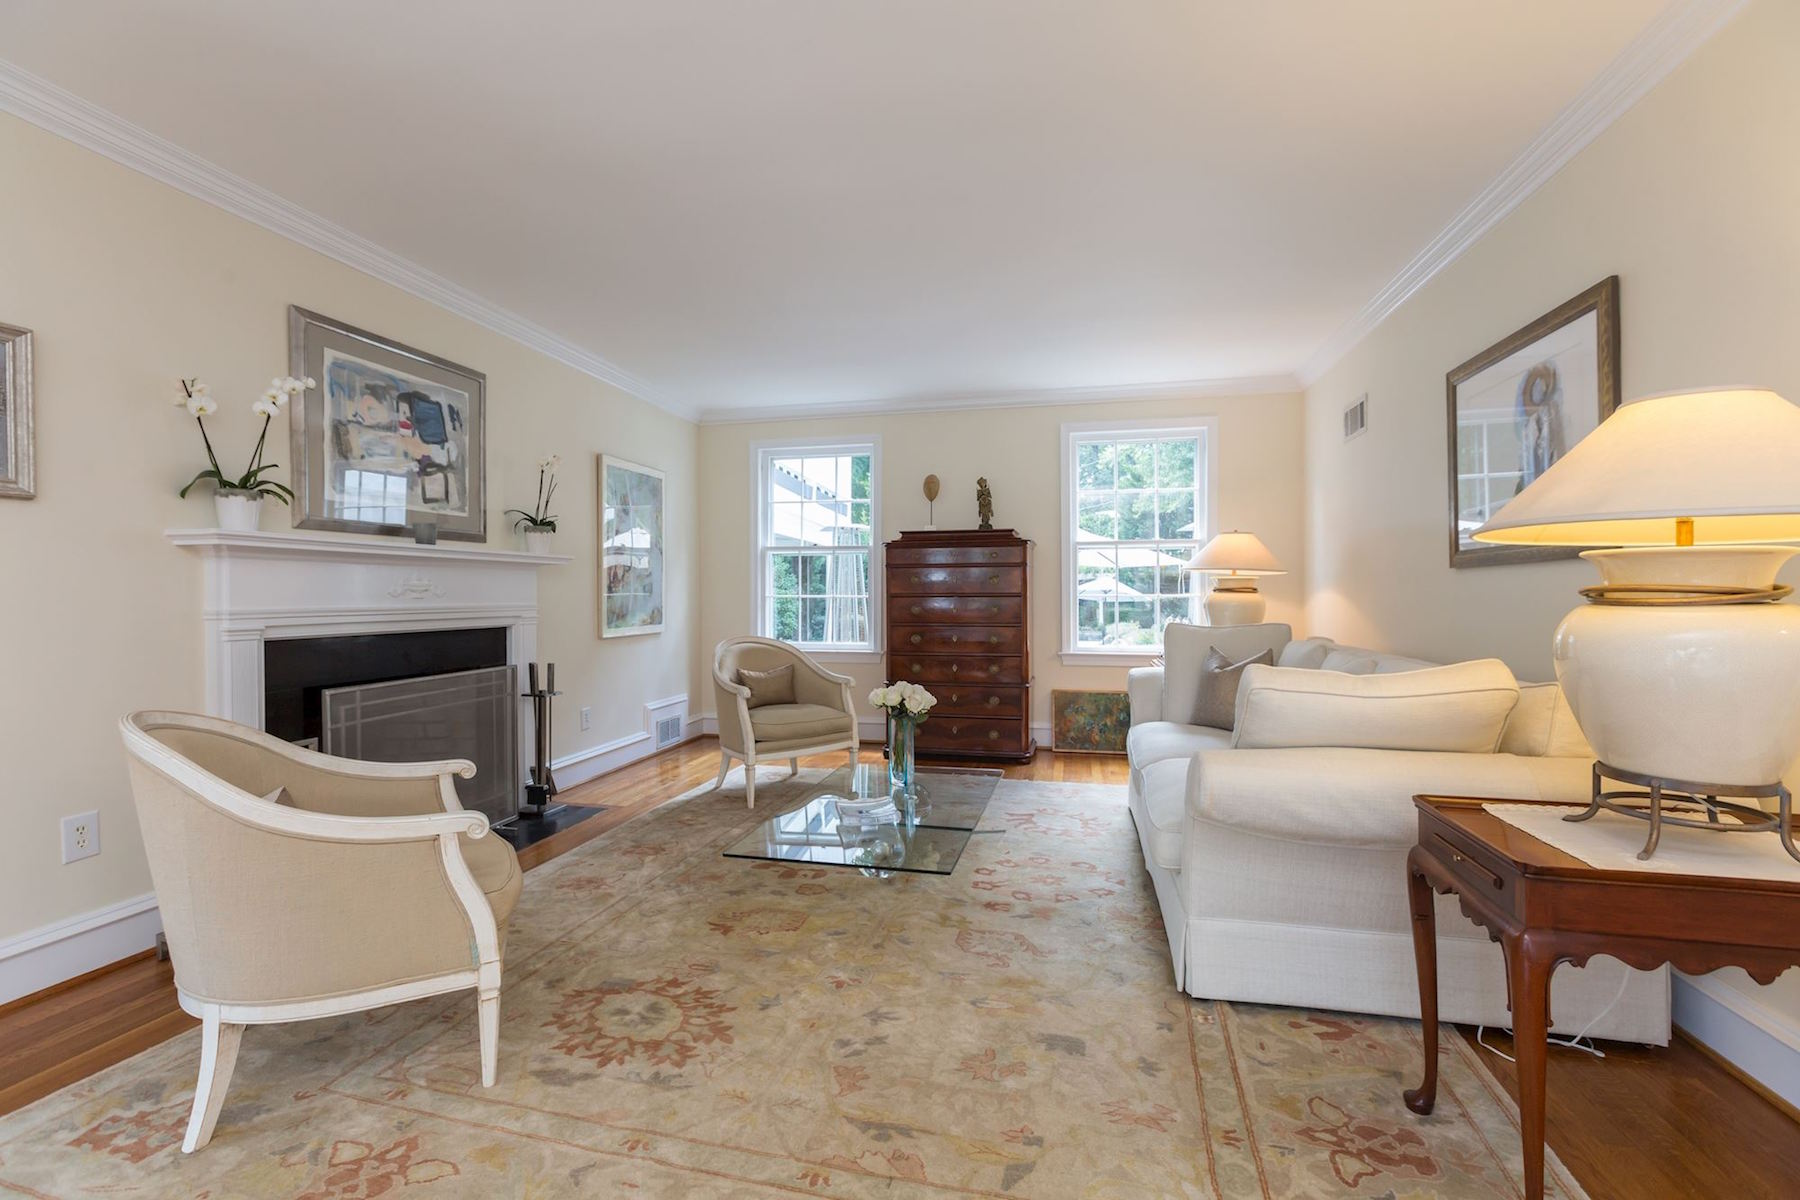 Additional photo for property listing at 5153 Tilden Street 5153 Tilden Street Nw Washington, District Of Columbia 20016 Vereinigte Staaten